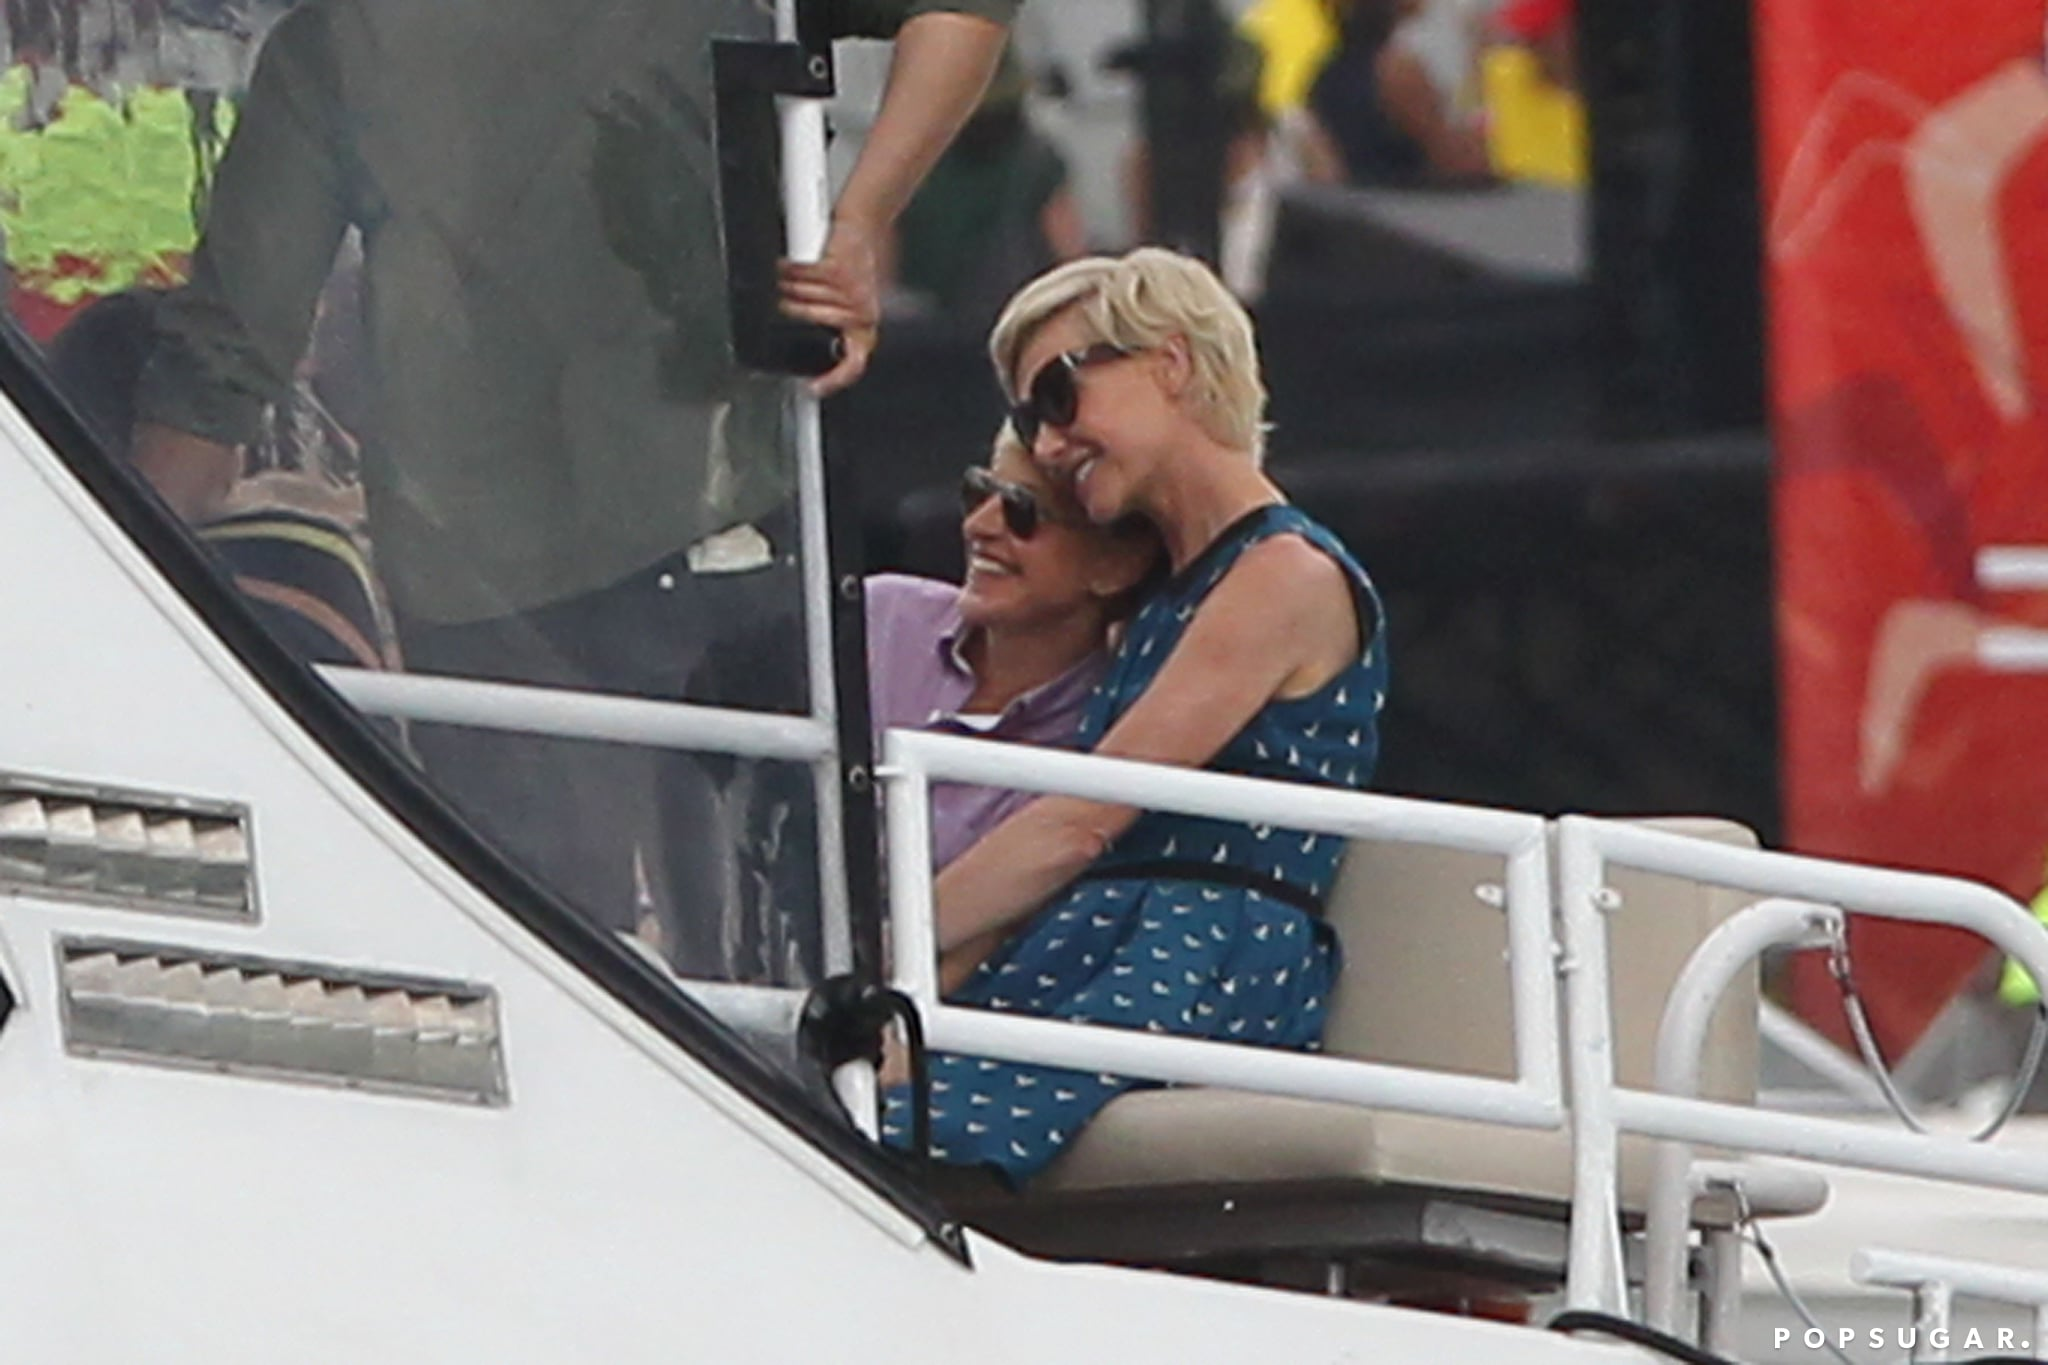 Ellen Degeneres and Portia de Rossi cuddled up on a water taxi in Sydney, Australia, in May 2013.